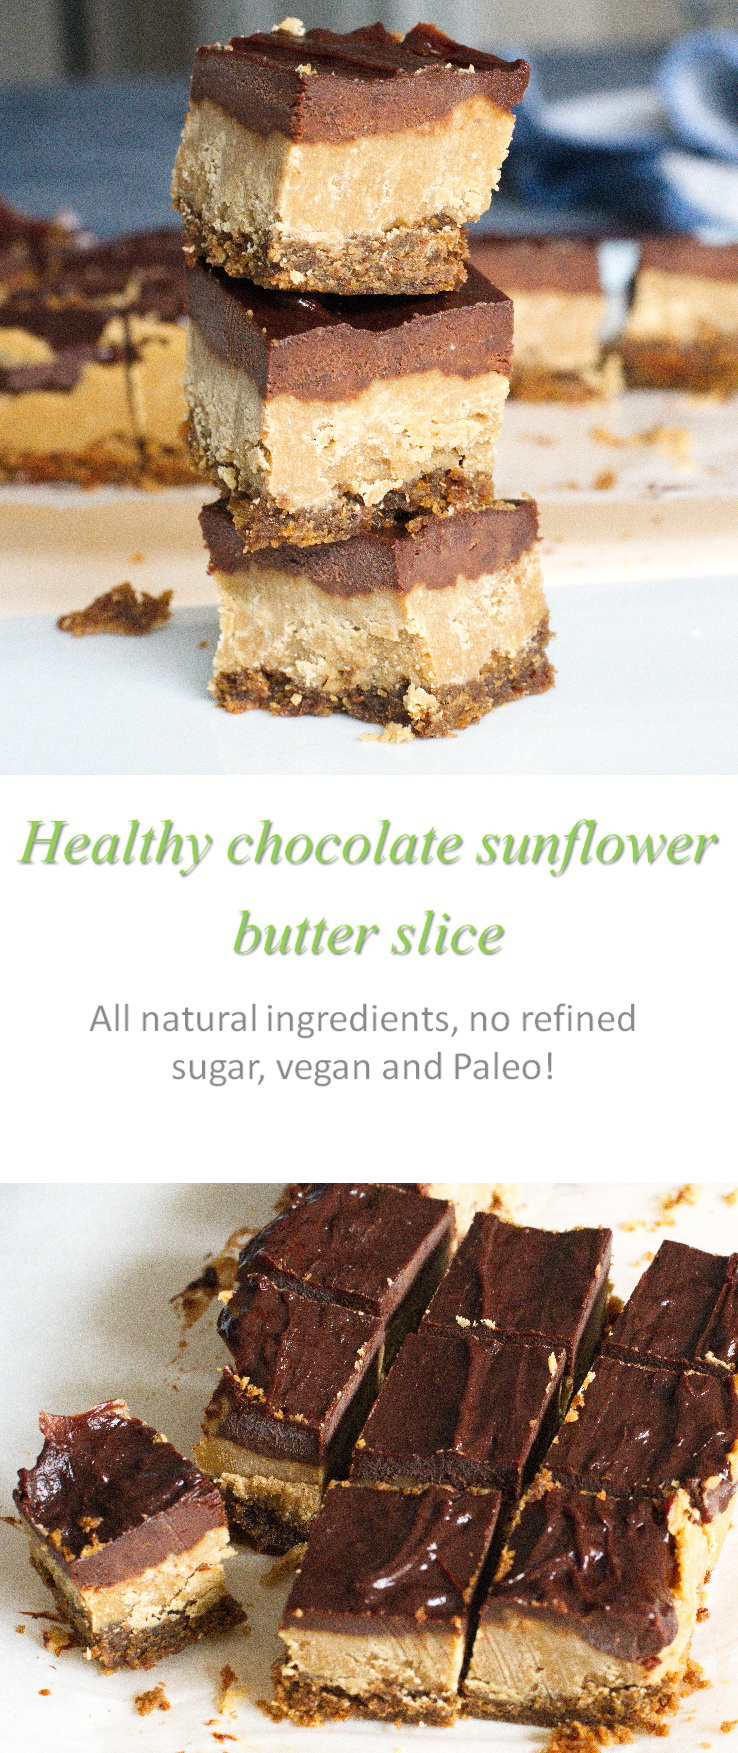 A healthy chocolate sunbutter slice, with no gluten, dairy, eggs, nuts or refined sugar - but totally packed with flavor! #sunbutter